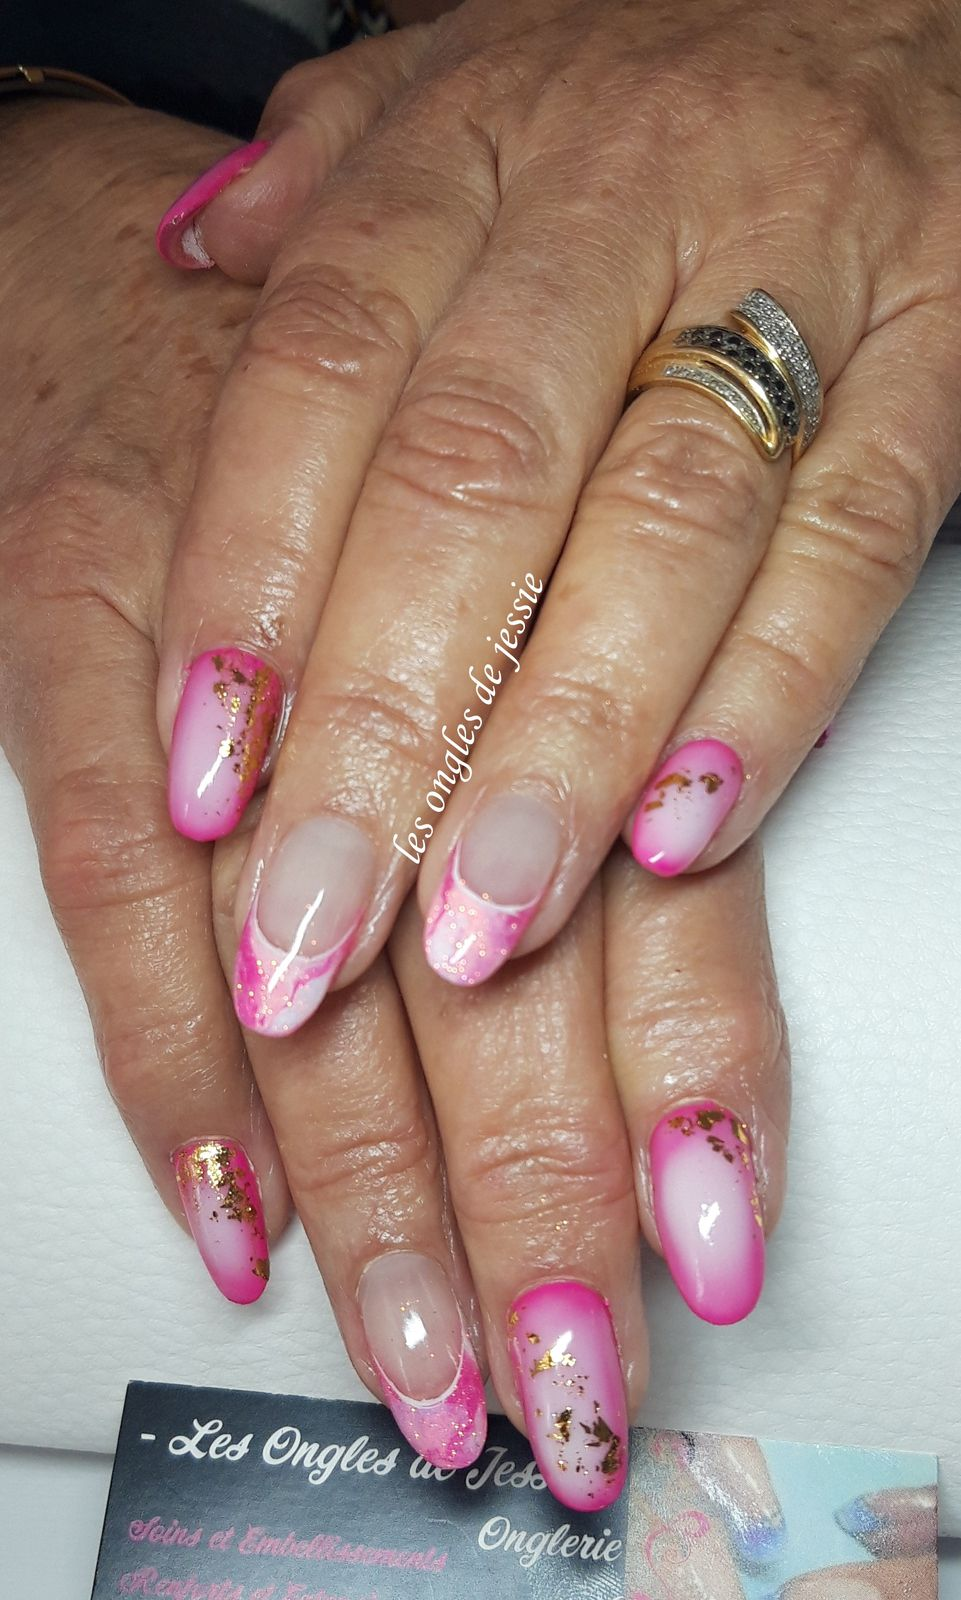 vernis contouring rose et touches d'or